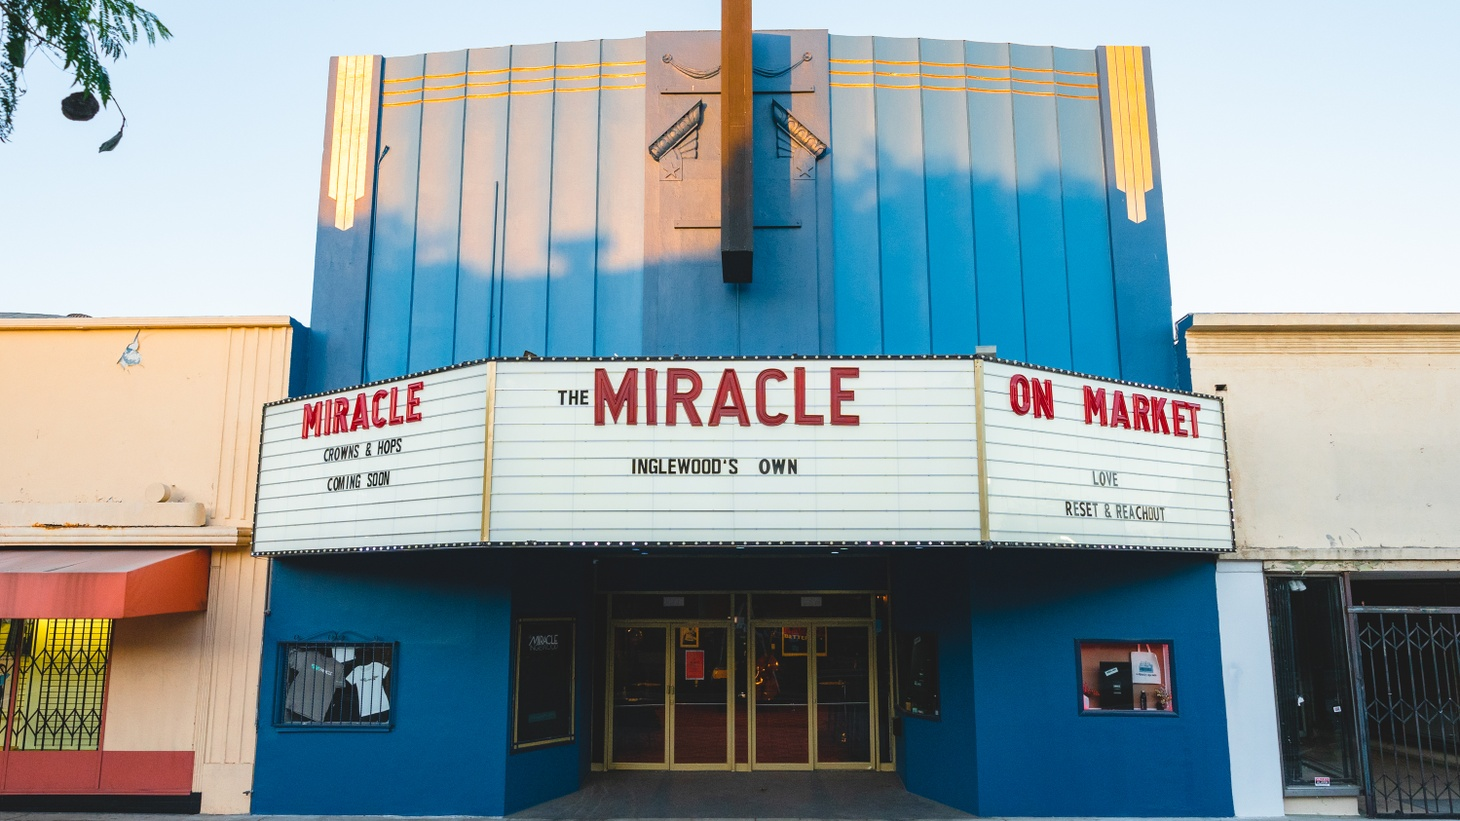 Indoor music venues in Southern California are still dark, like The Miracle Inglewood, but talent bookers are beginning to add dates to their 2021 calendar.